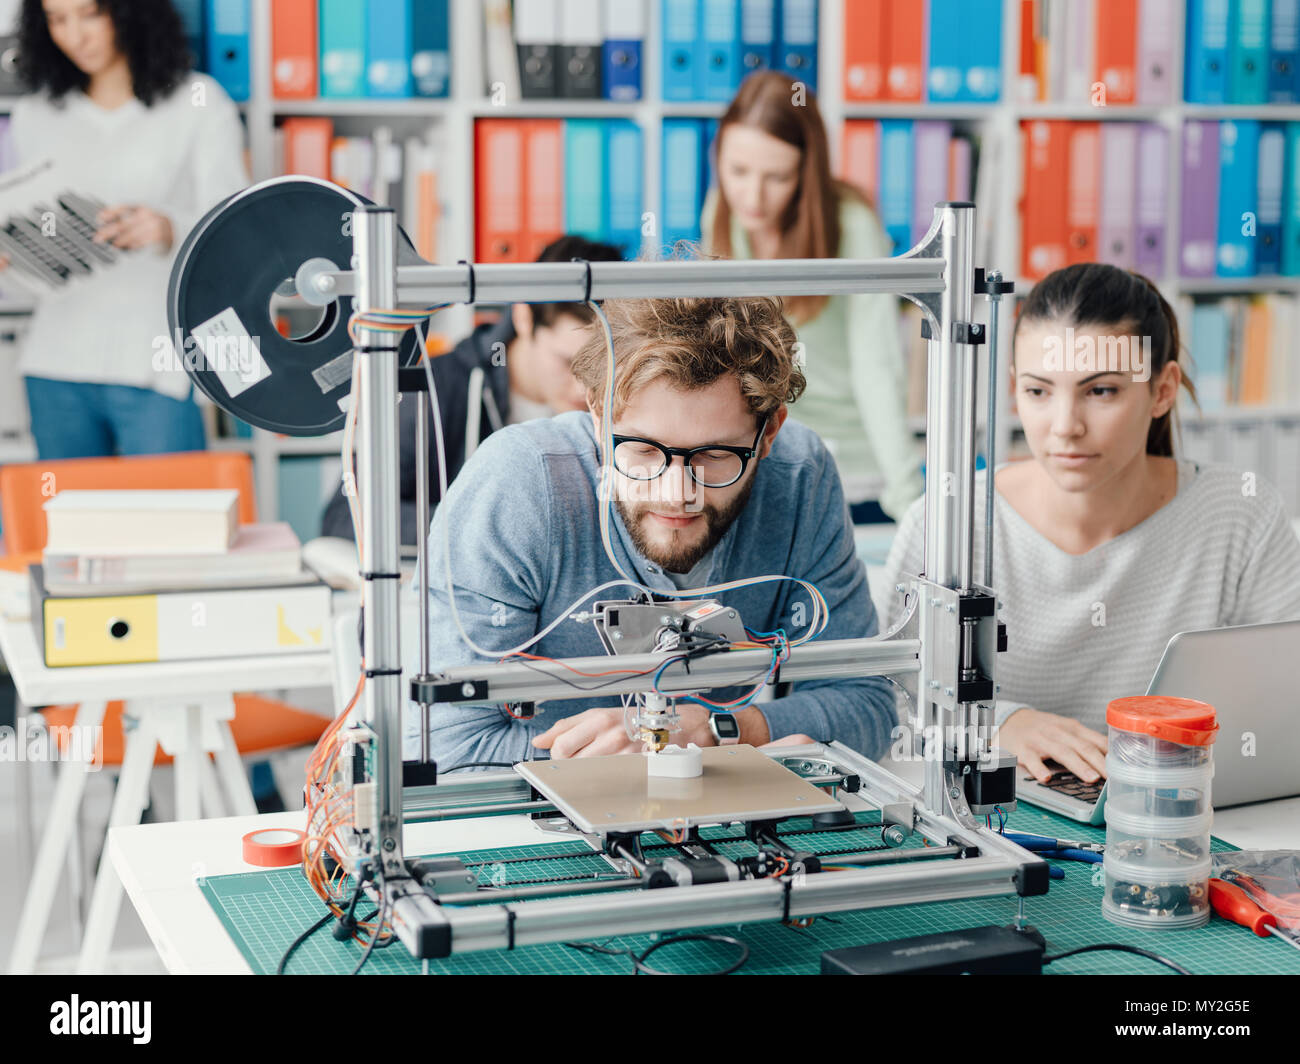 Male and female engineering students using a 3D printer in the lab, technology and learning concept - Stock Image